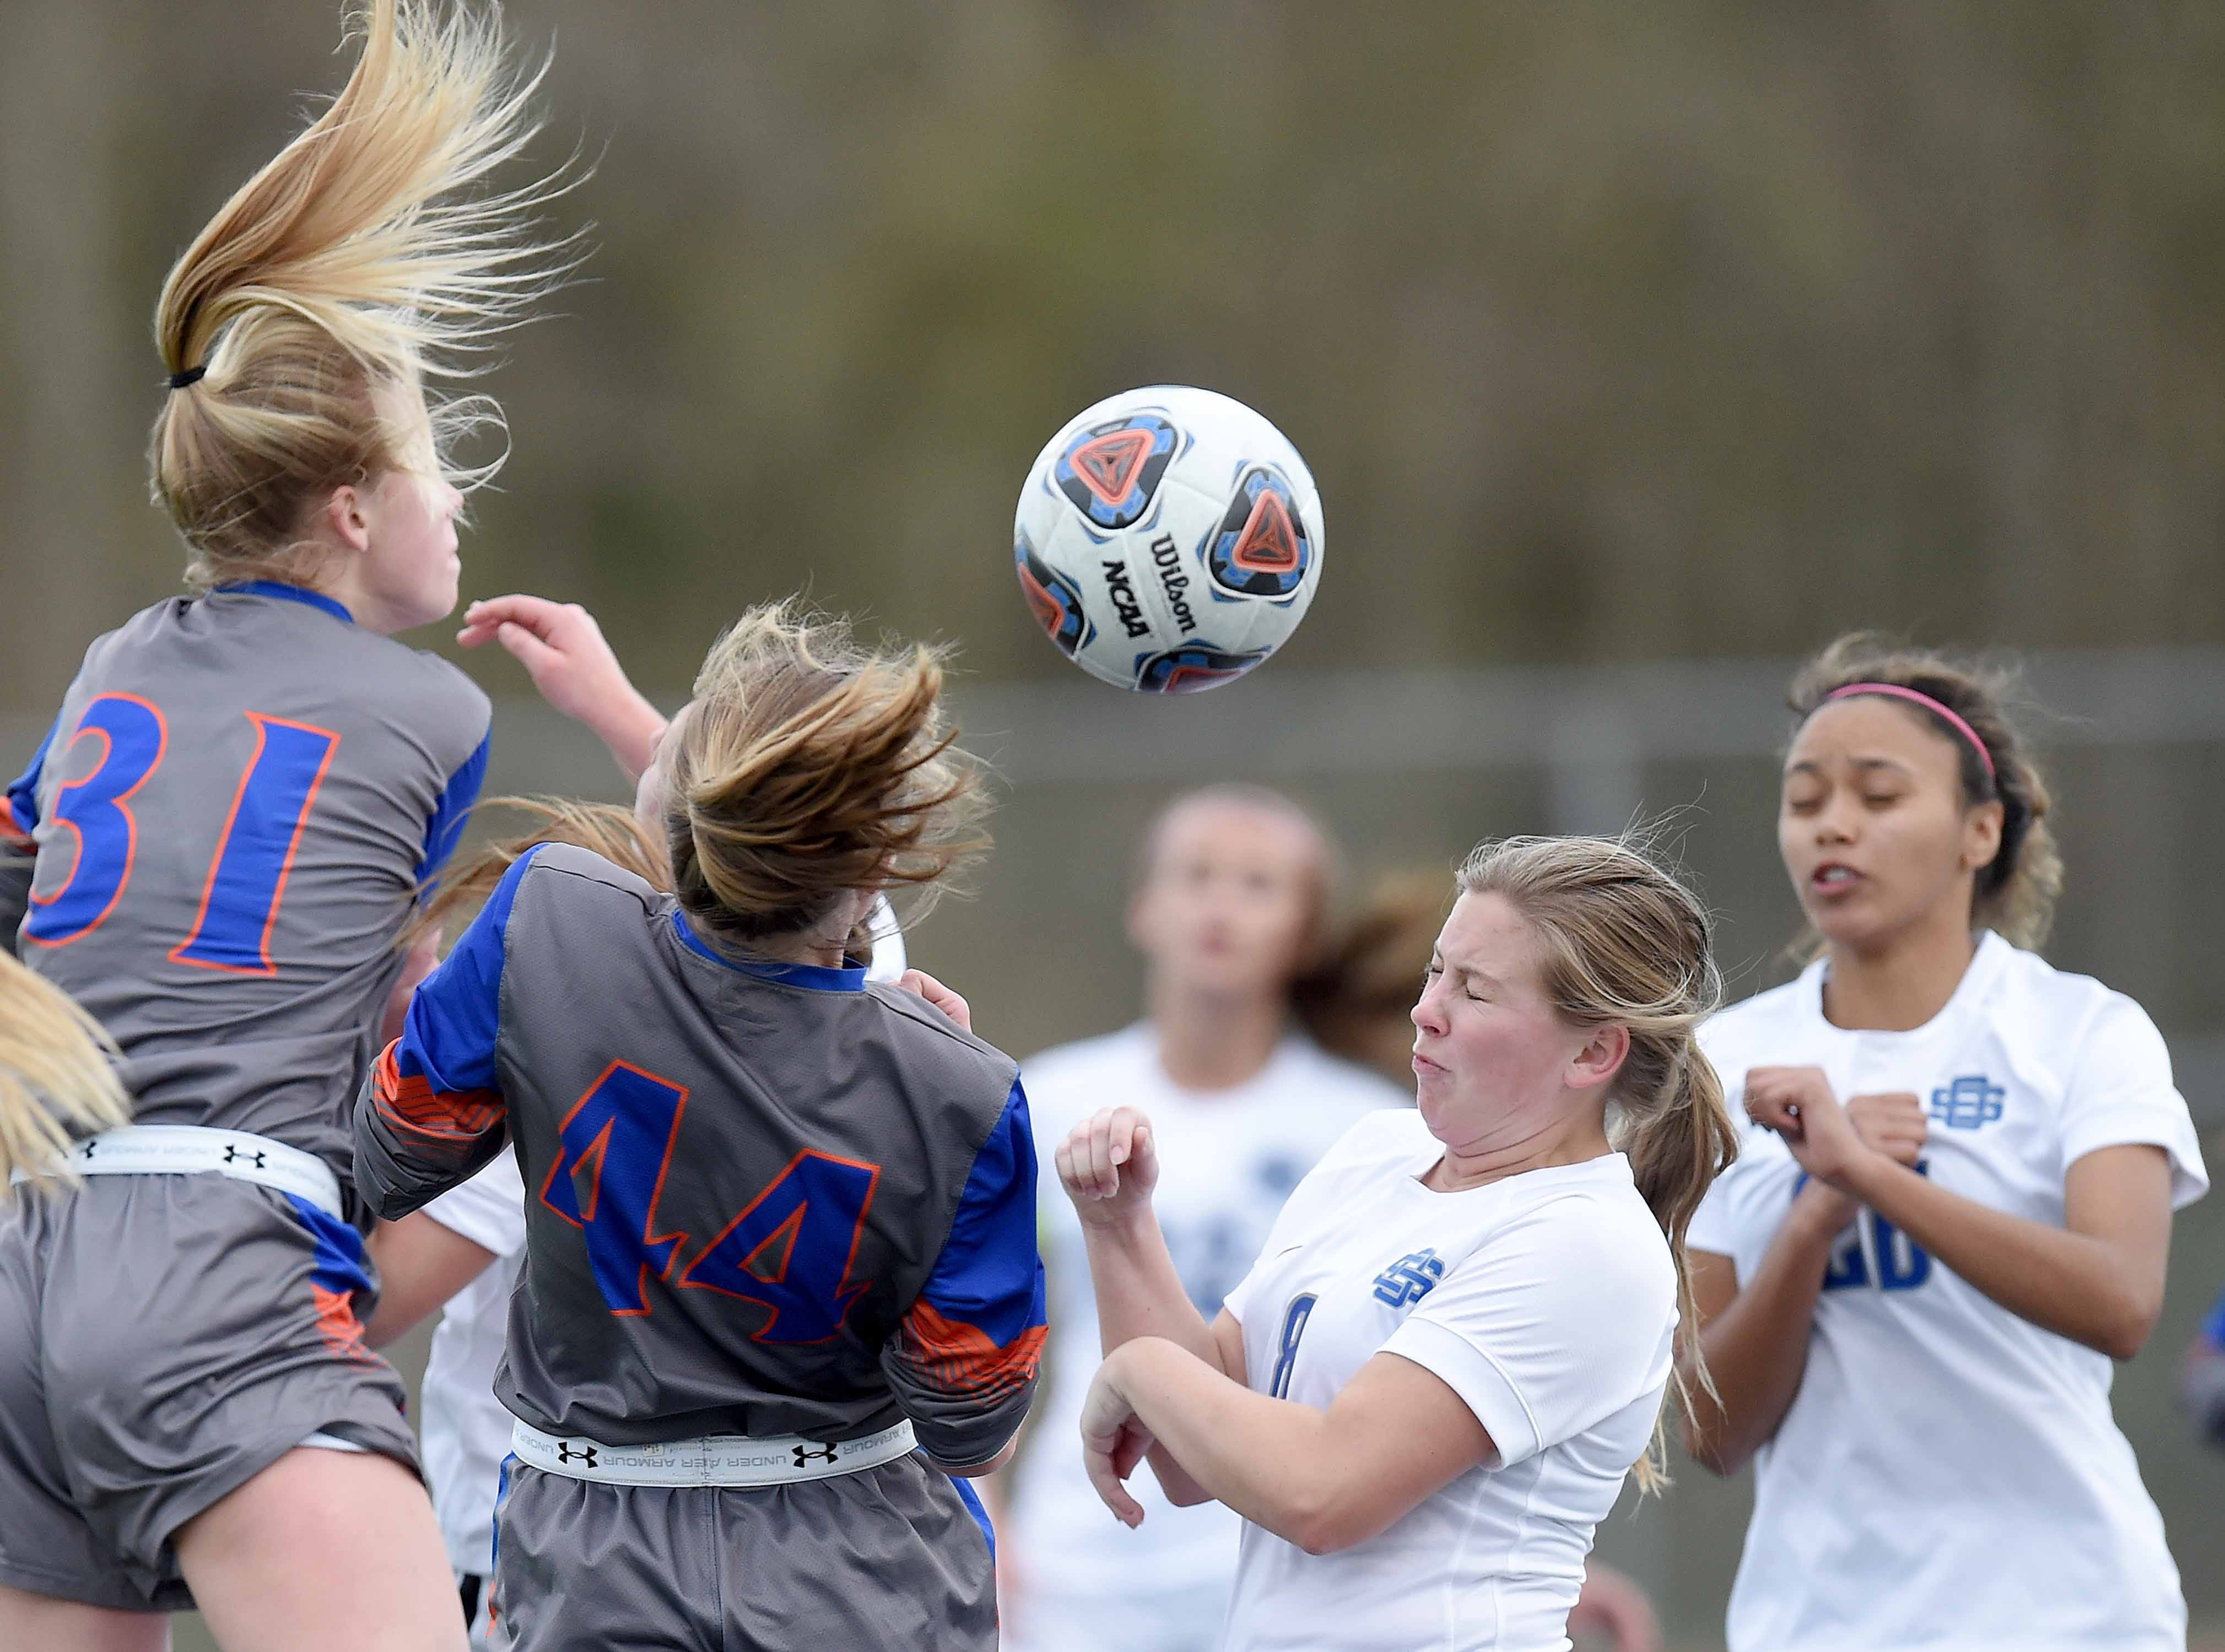 The hair is flying as the ball comes into the box on a corner kick Class 6A state championship in the MHSAA BlueCross Blue Shield of Mississippi Soccer Classic on Saturday, February 9, 2019, at Ridgeland High School in Ridgeland, Miss.